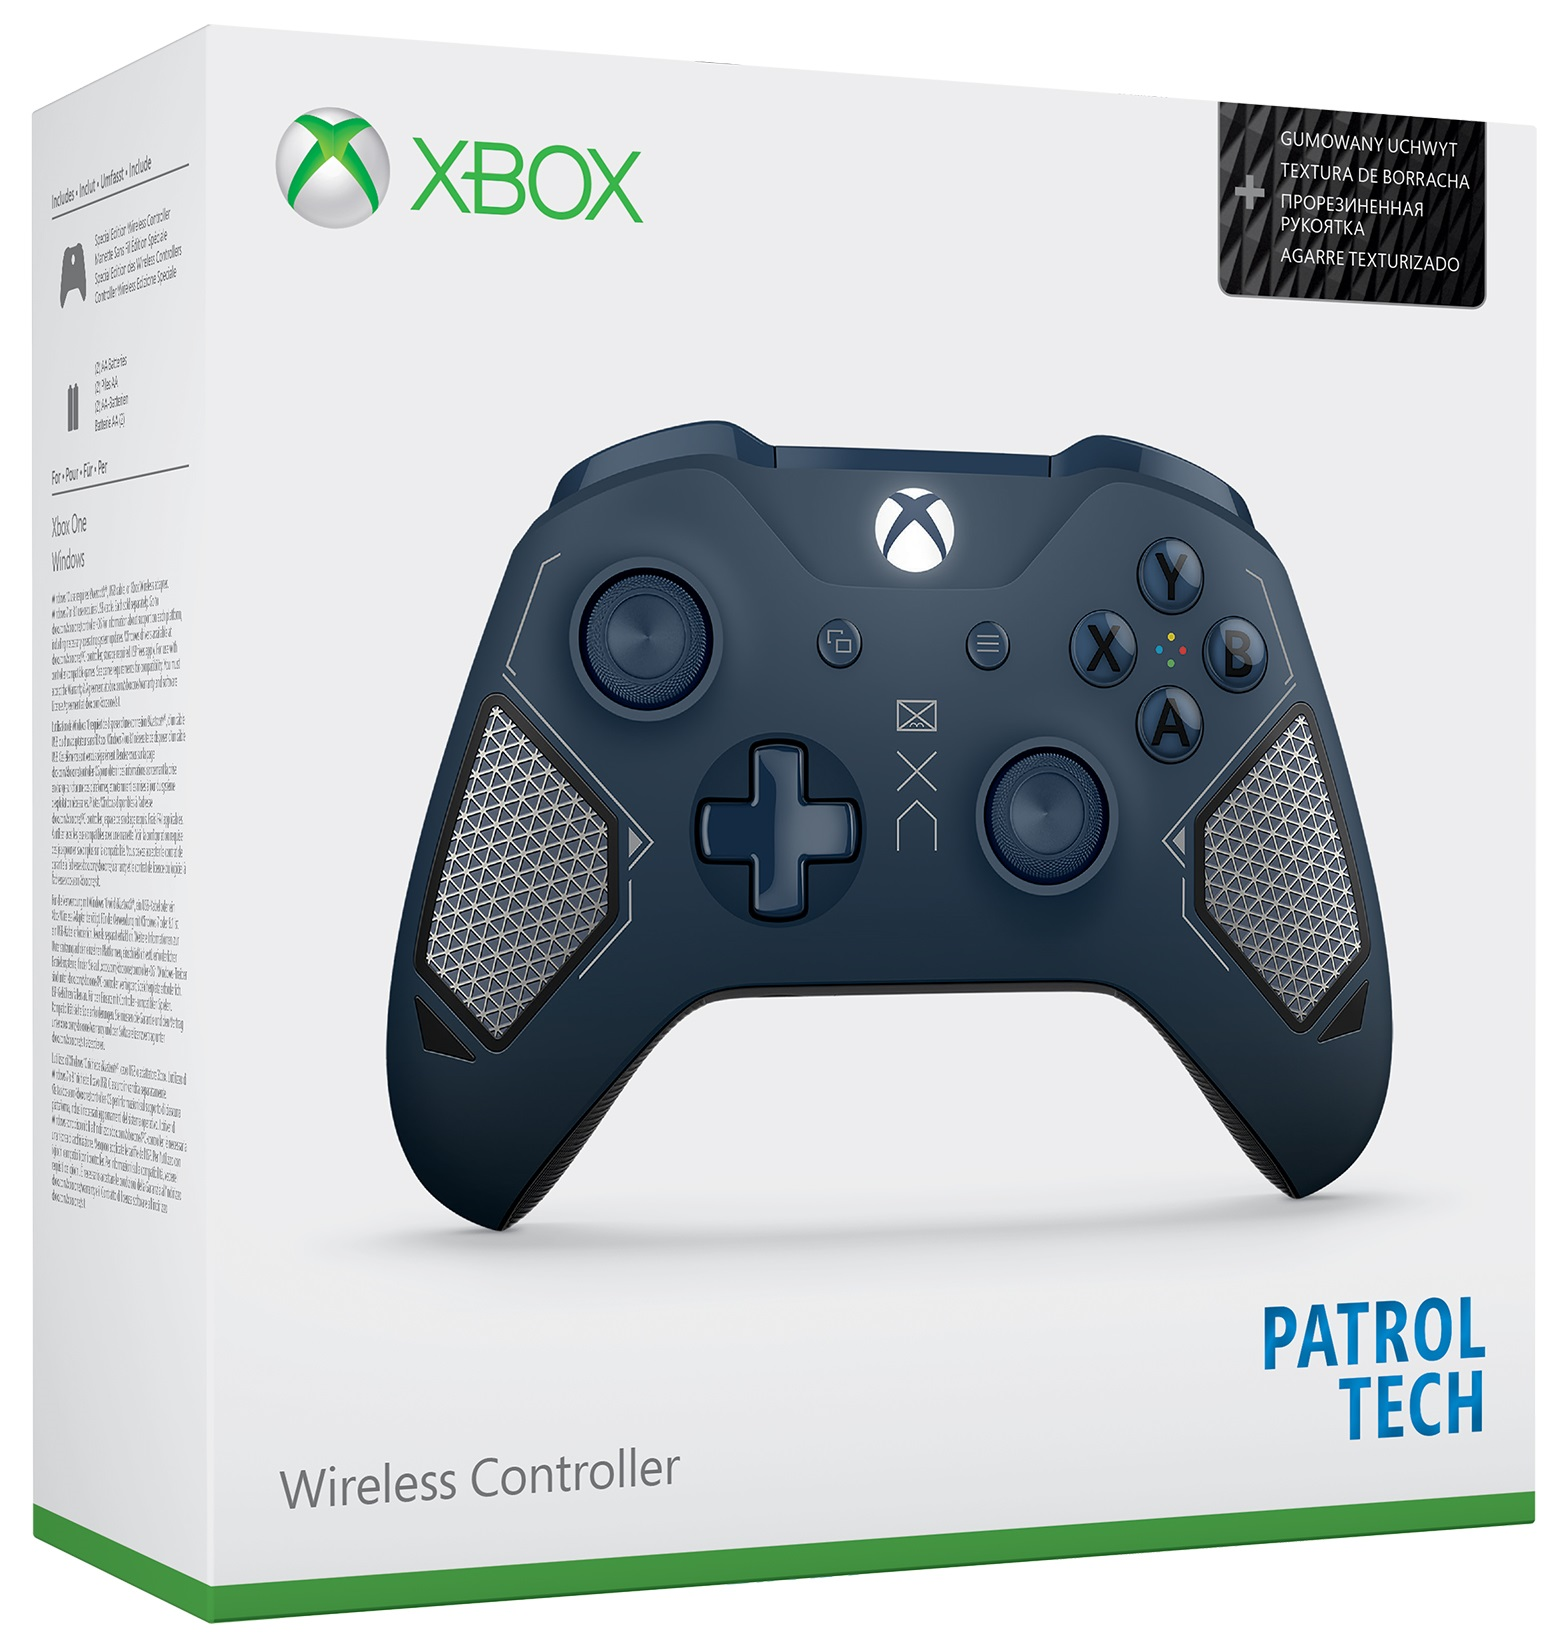 Microsoft Xbox One Wireless Controller Patrol Tech - Xbox One Kiegészítők